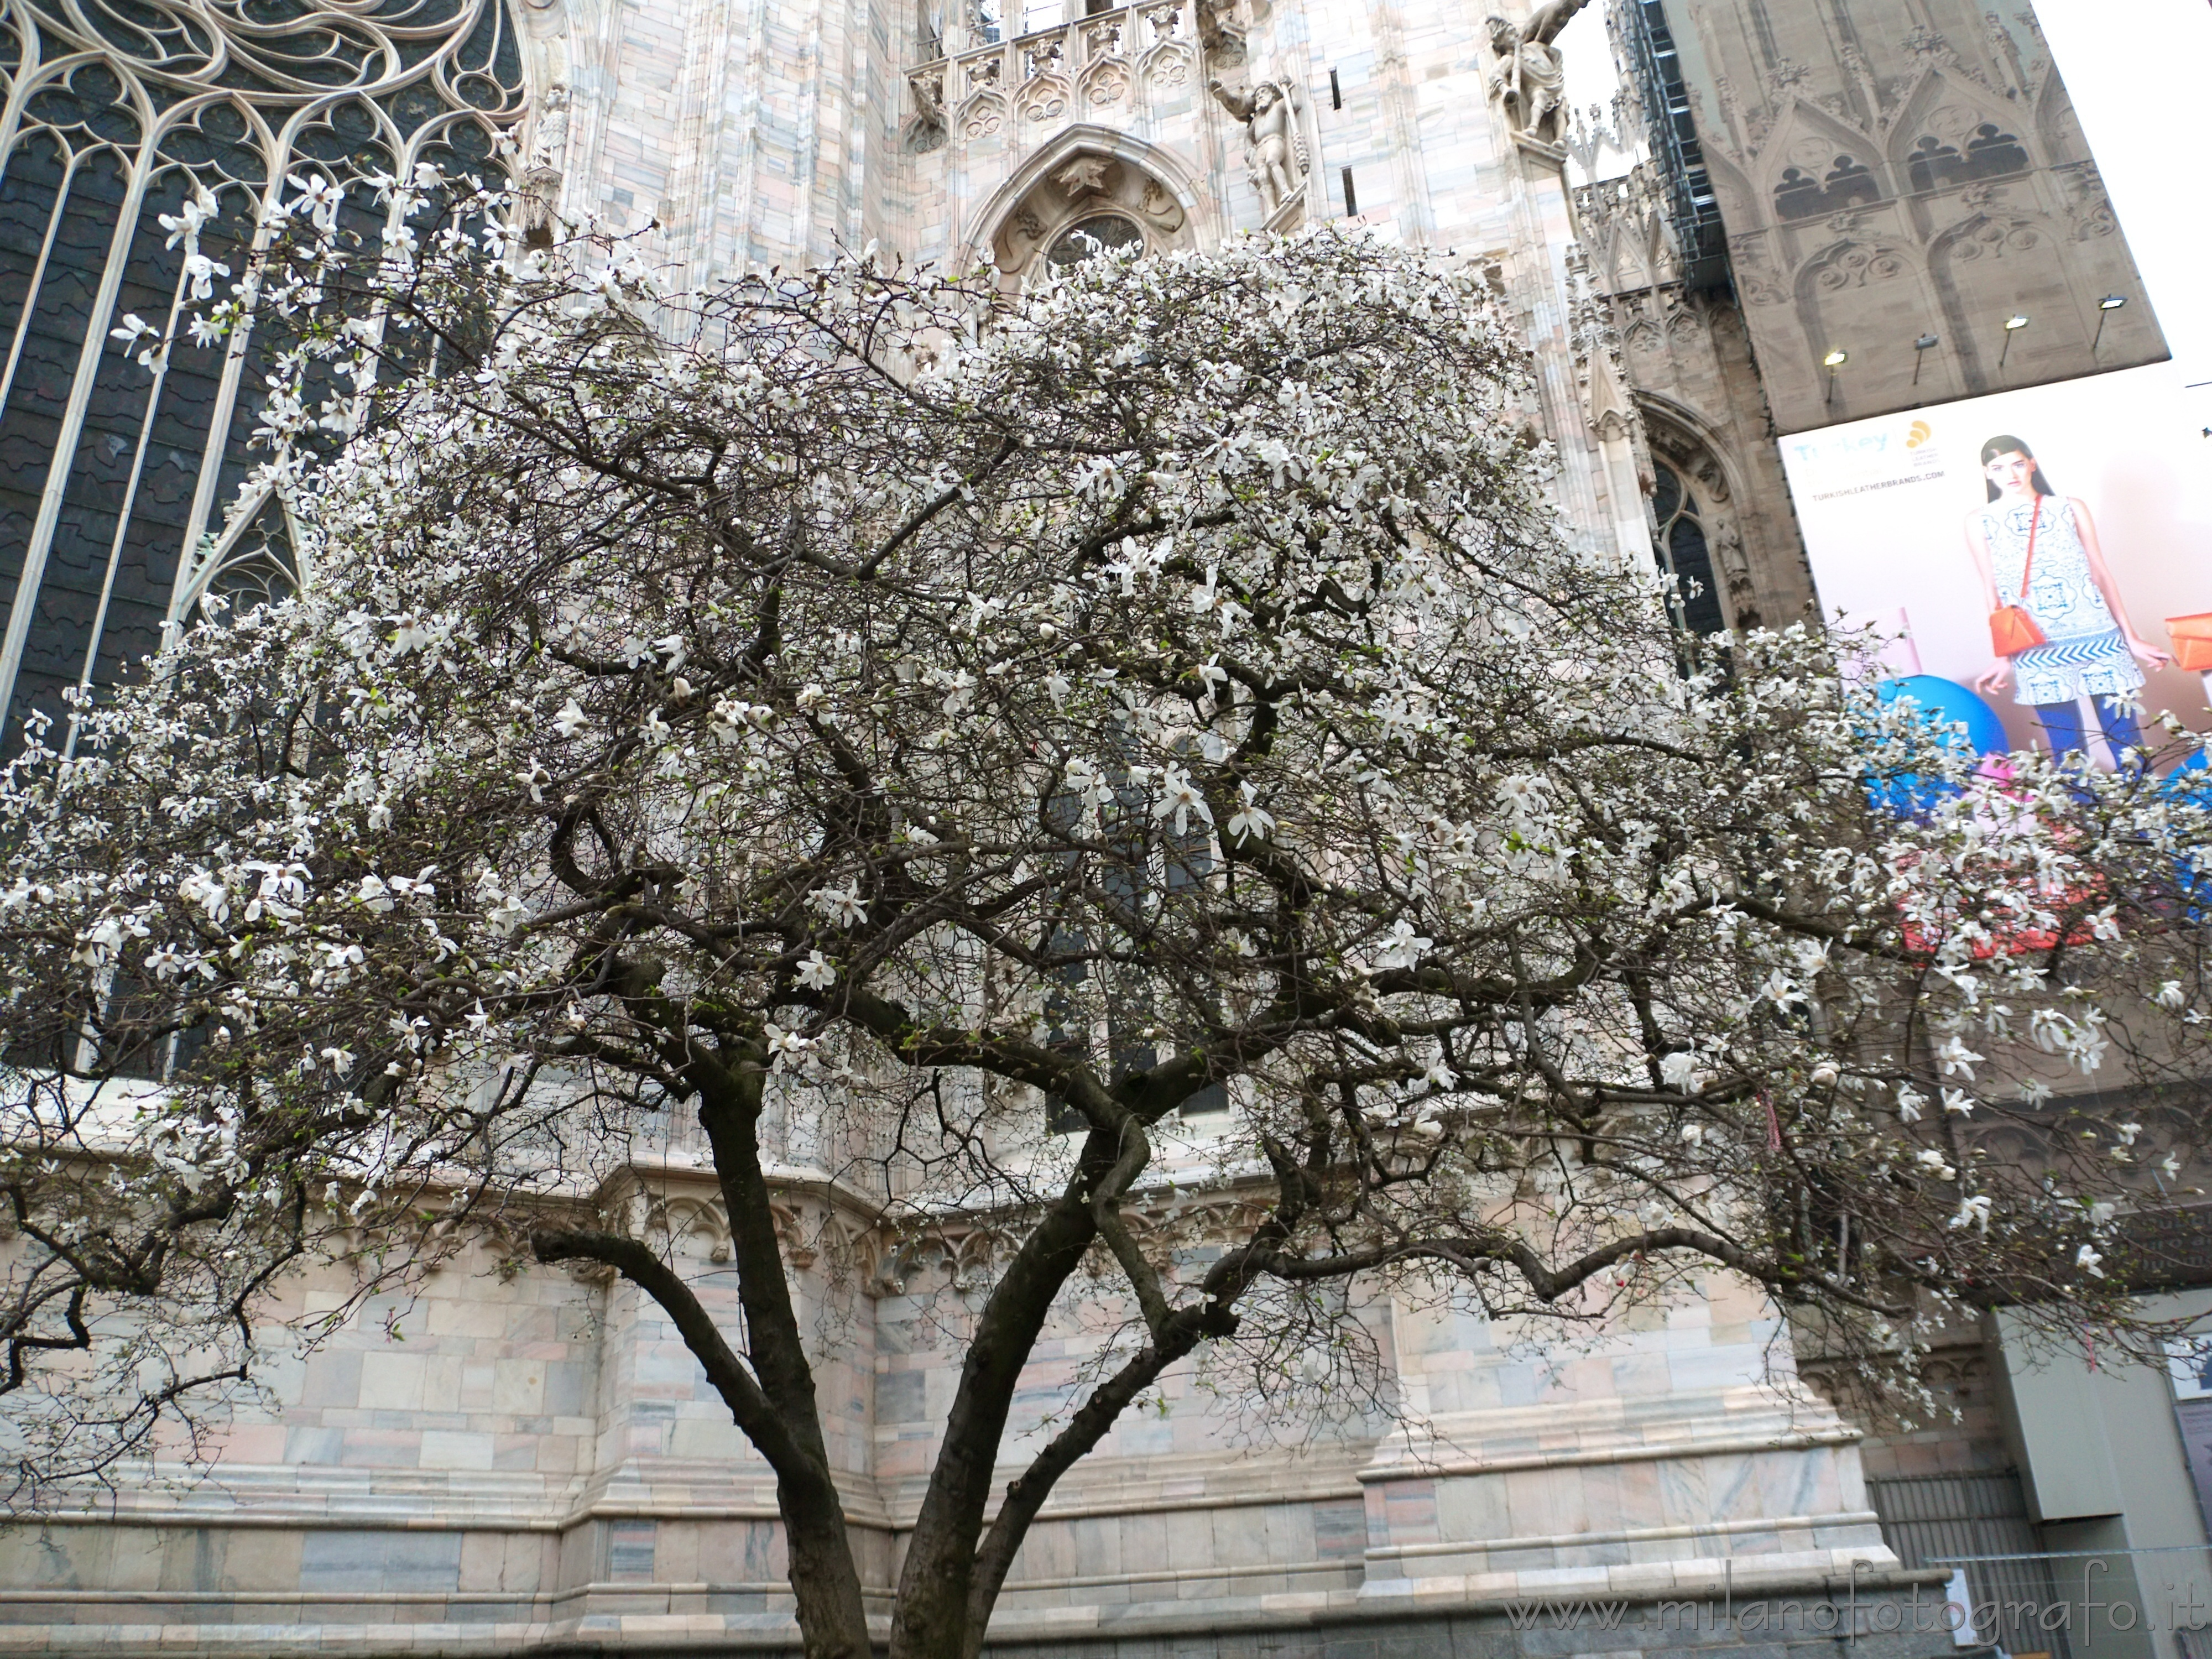 Milan (Italy): The white magnolia behind the Duomo in bloom - Milan (Italy)